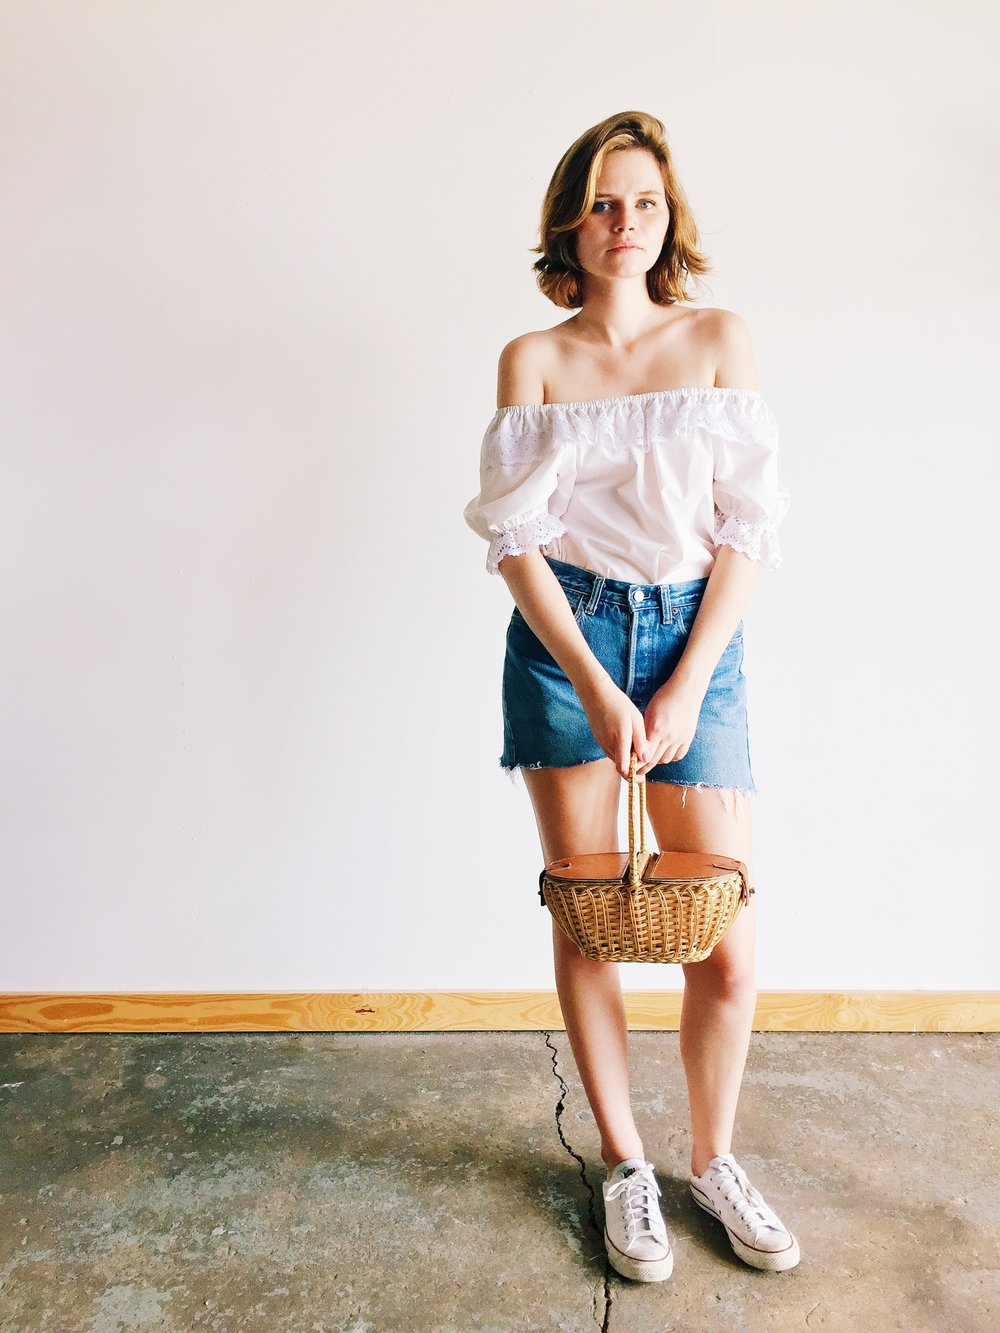 wonaponatime-off-shoulder-denim-shorts-basket-vintage-lookbook